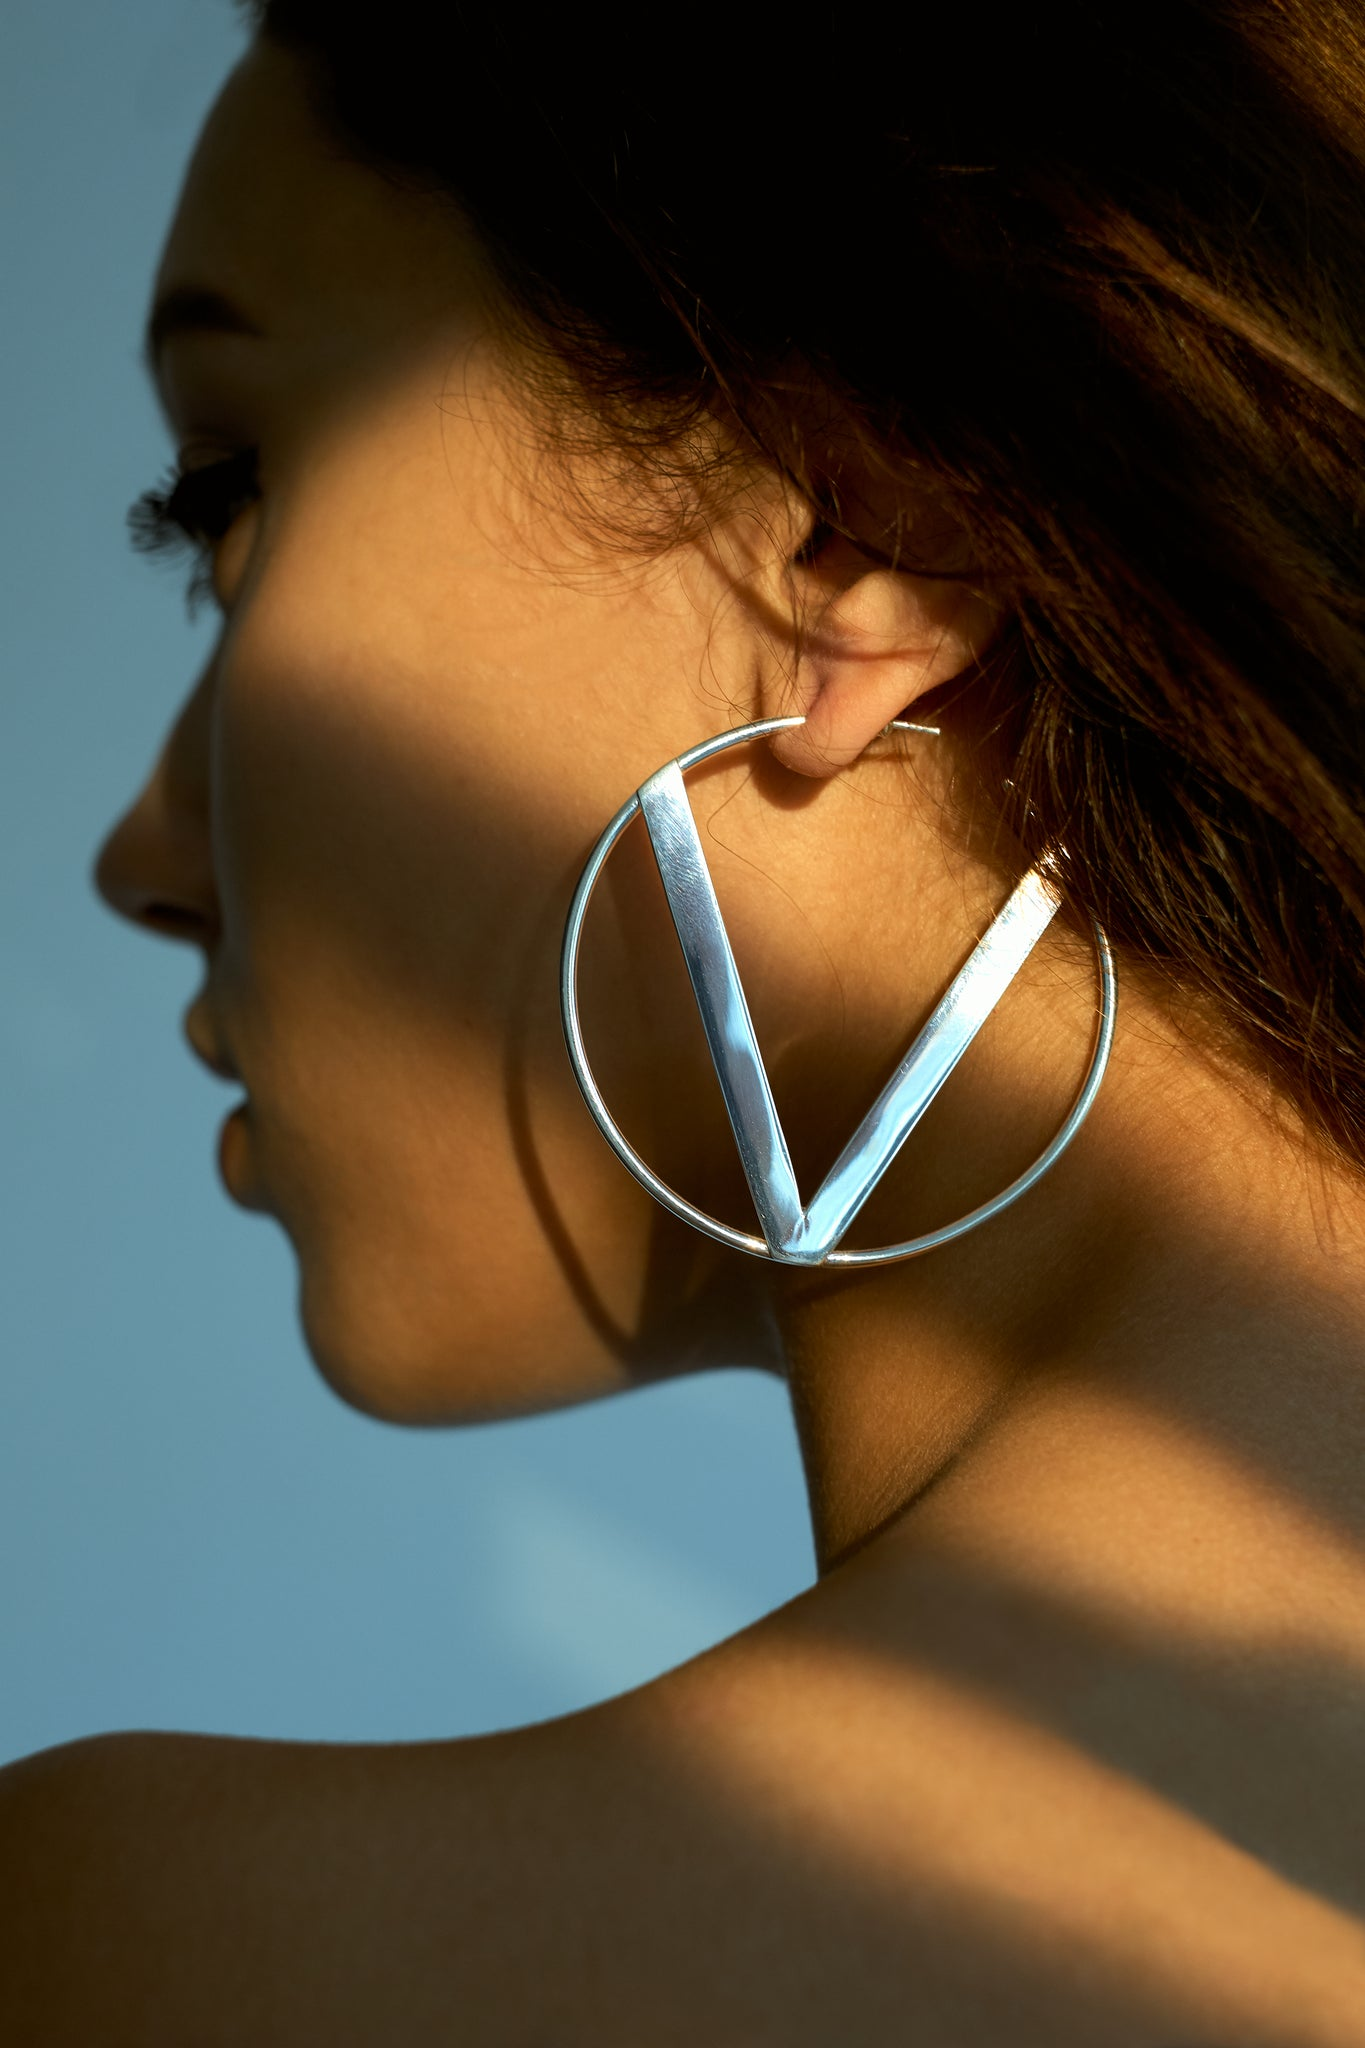 VIKA jewels FANTASIA collection recycled sterling silver jewelry jewellery handmade in bali